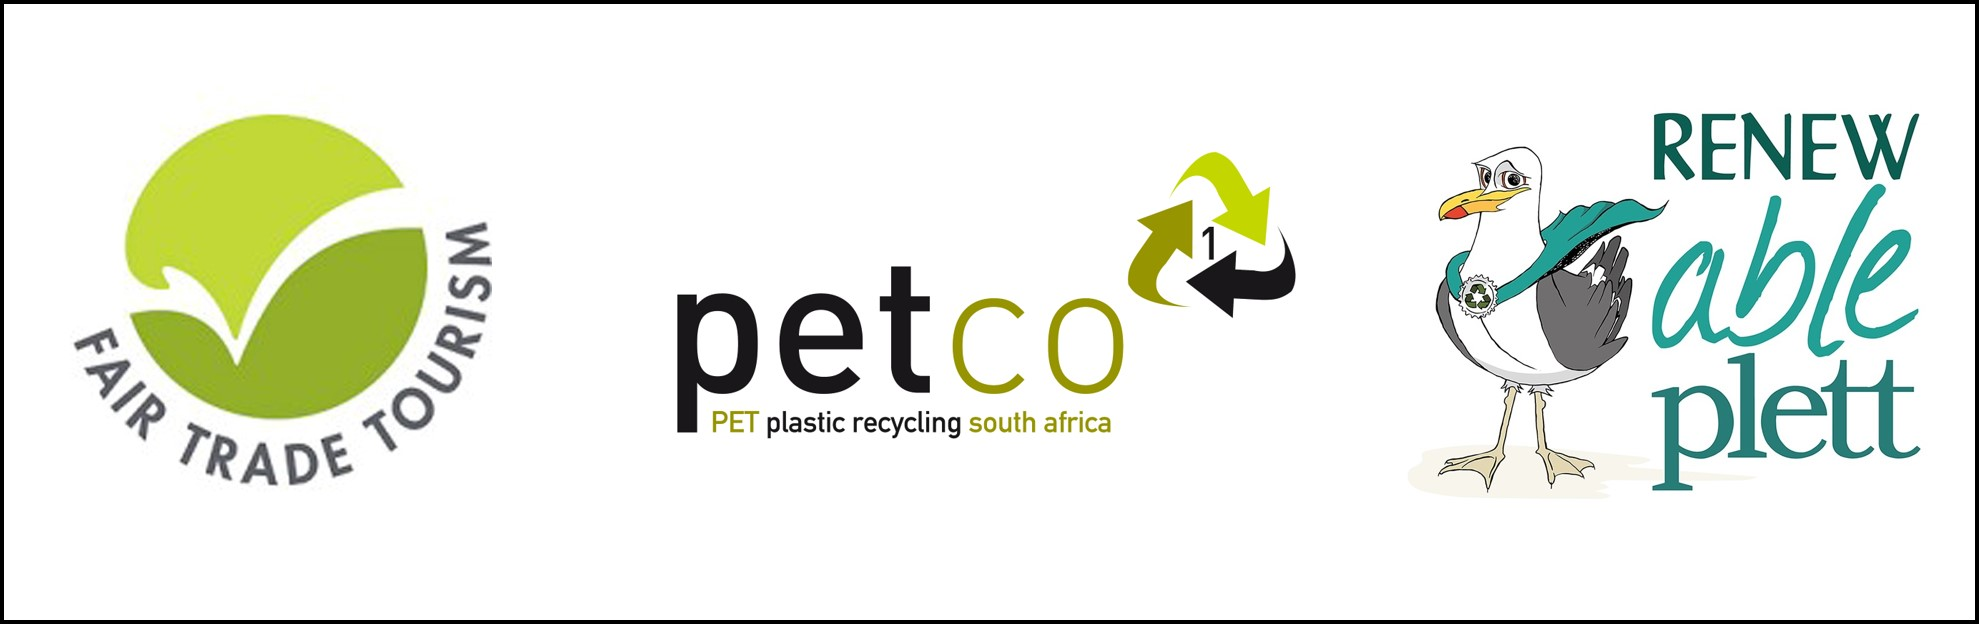 Fair Trade Tourism and PETCO present, 'No Time to Waste'.